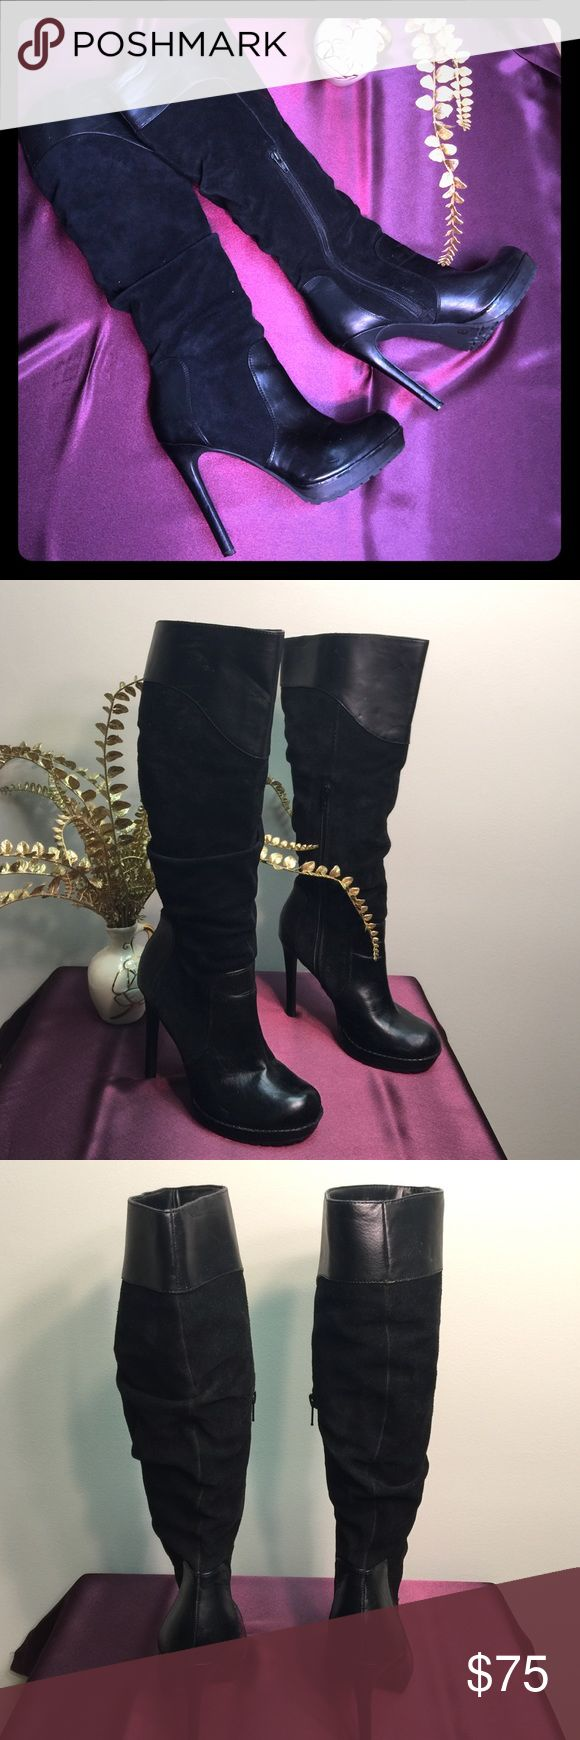 Jessica Simpson boot Gently worn Jessica Simpson Vaness style boots. Jessica Simpson Shoes Heeled Boots